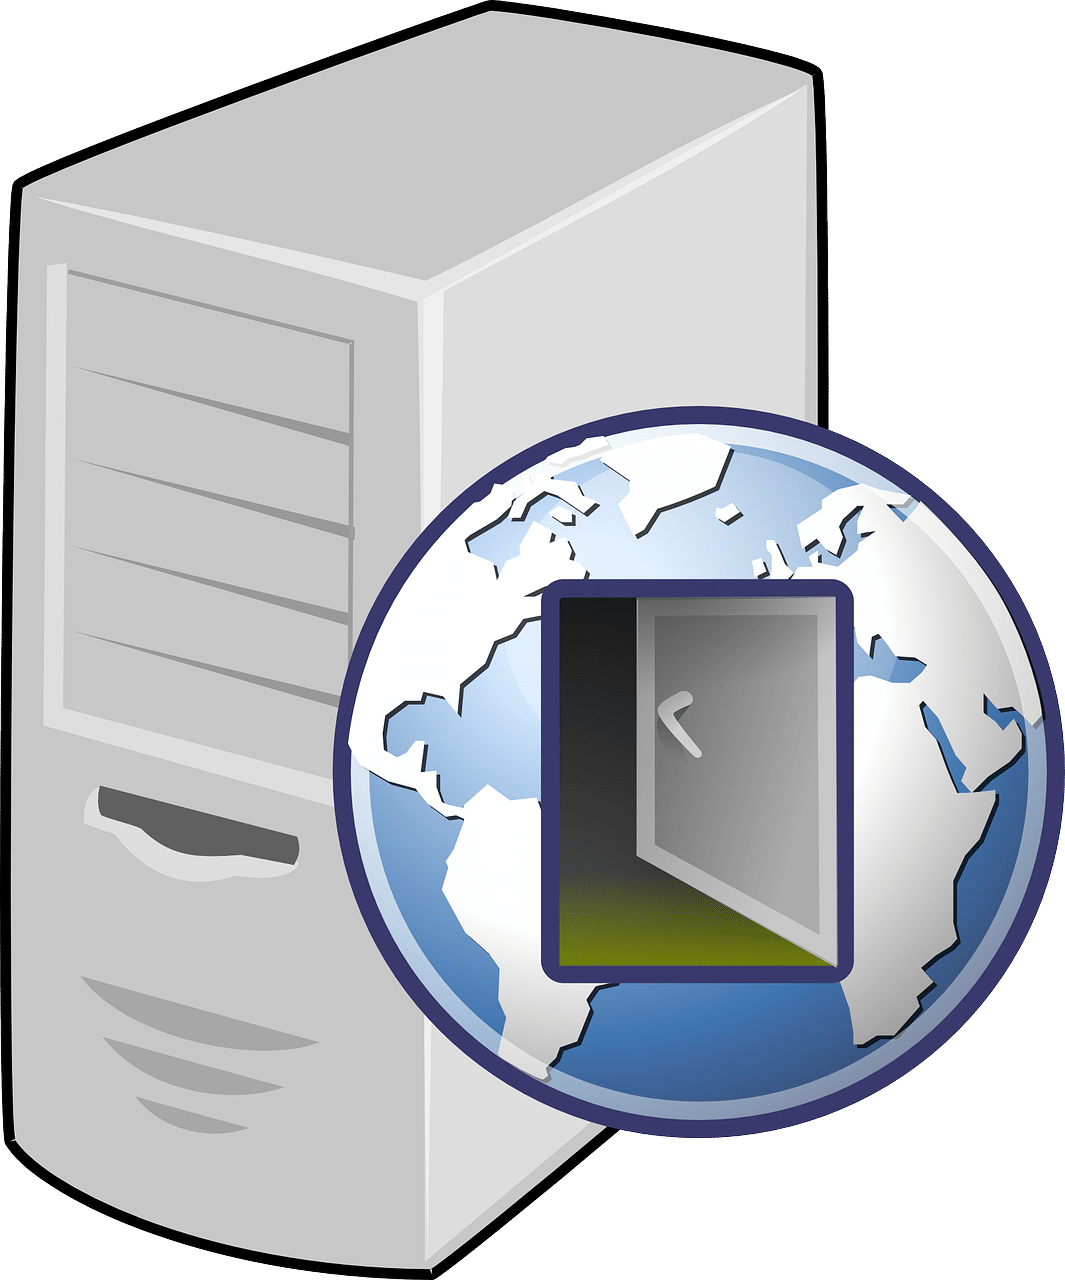 computer and internet icon